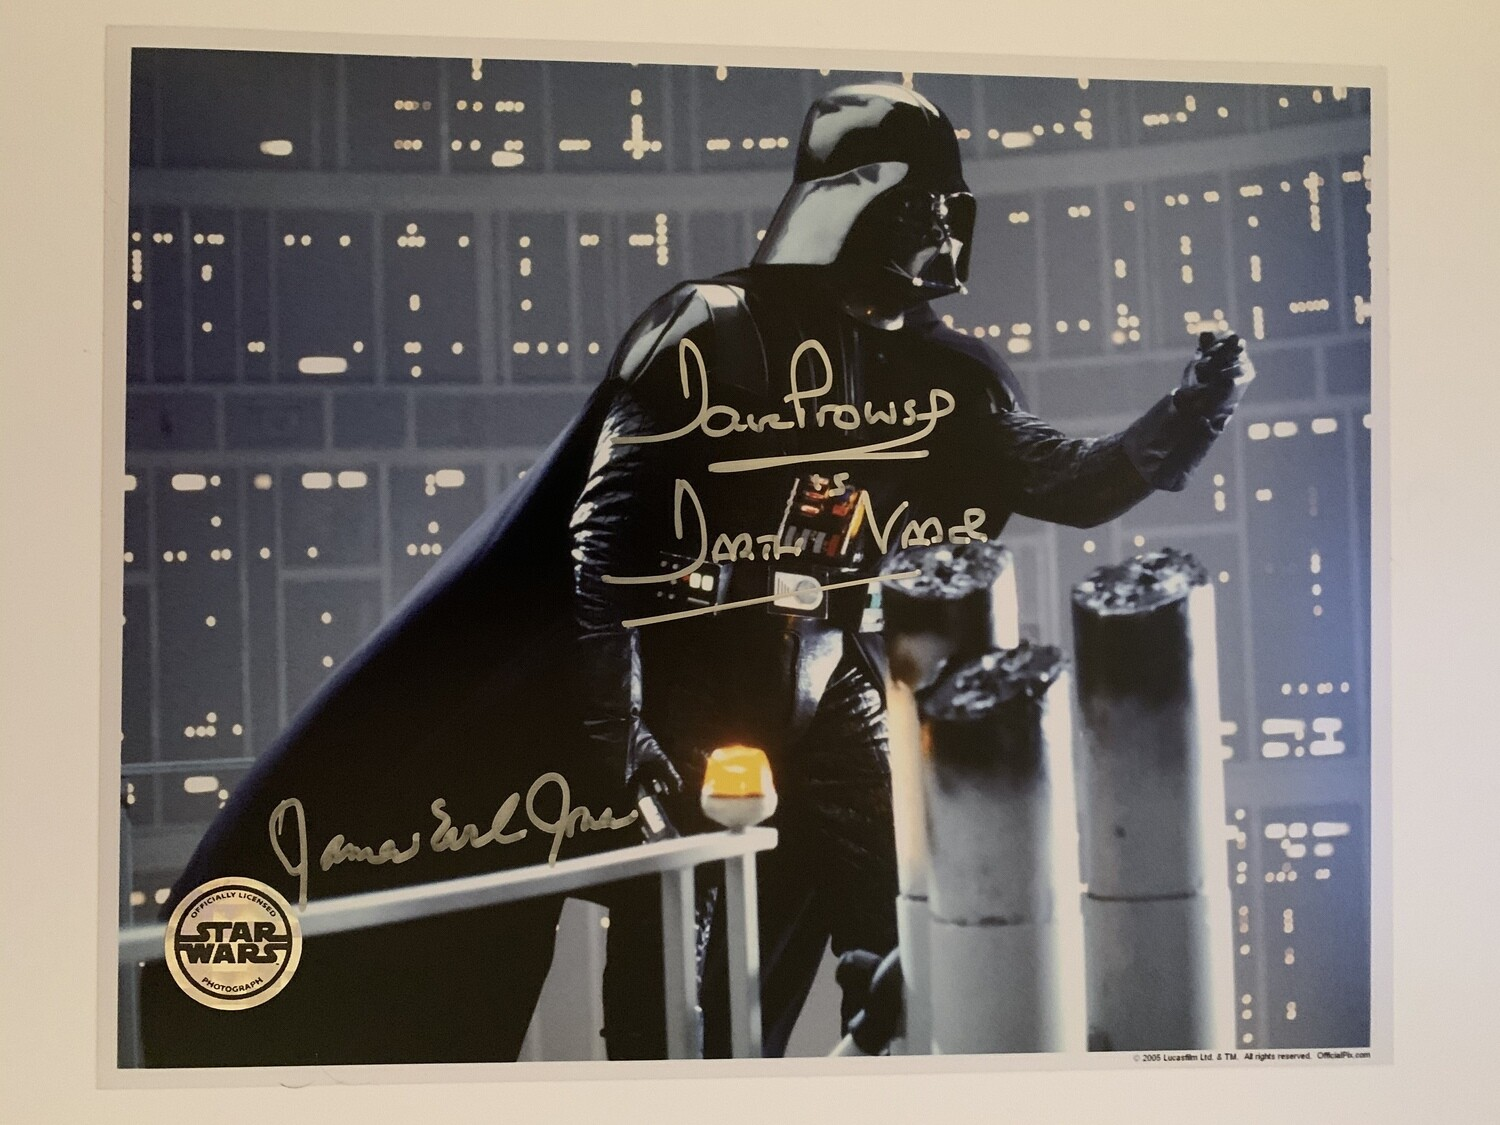 8X10 DARTH VADER PHOTO SIGNED BY DAVE PROWSE AND JAMES EARL JONES